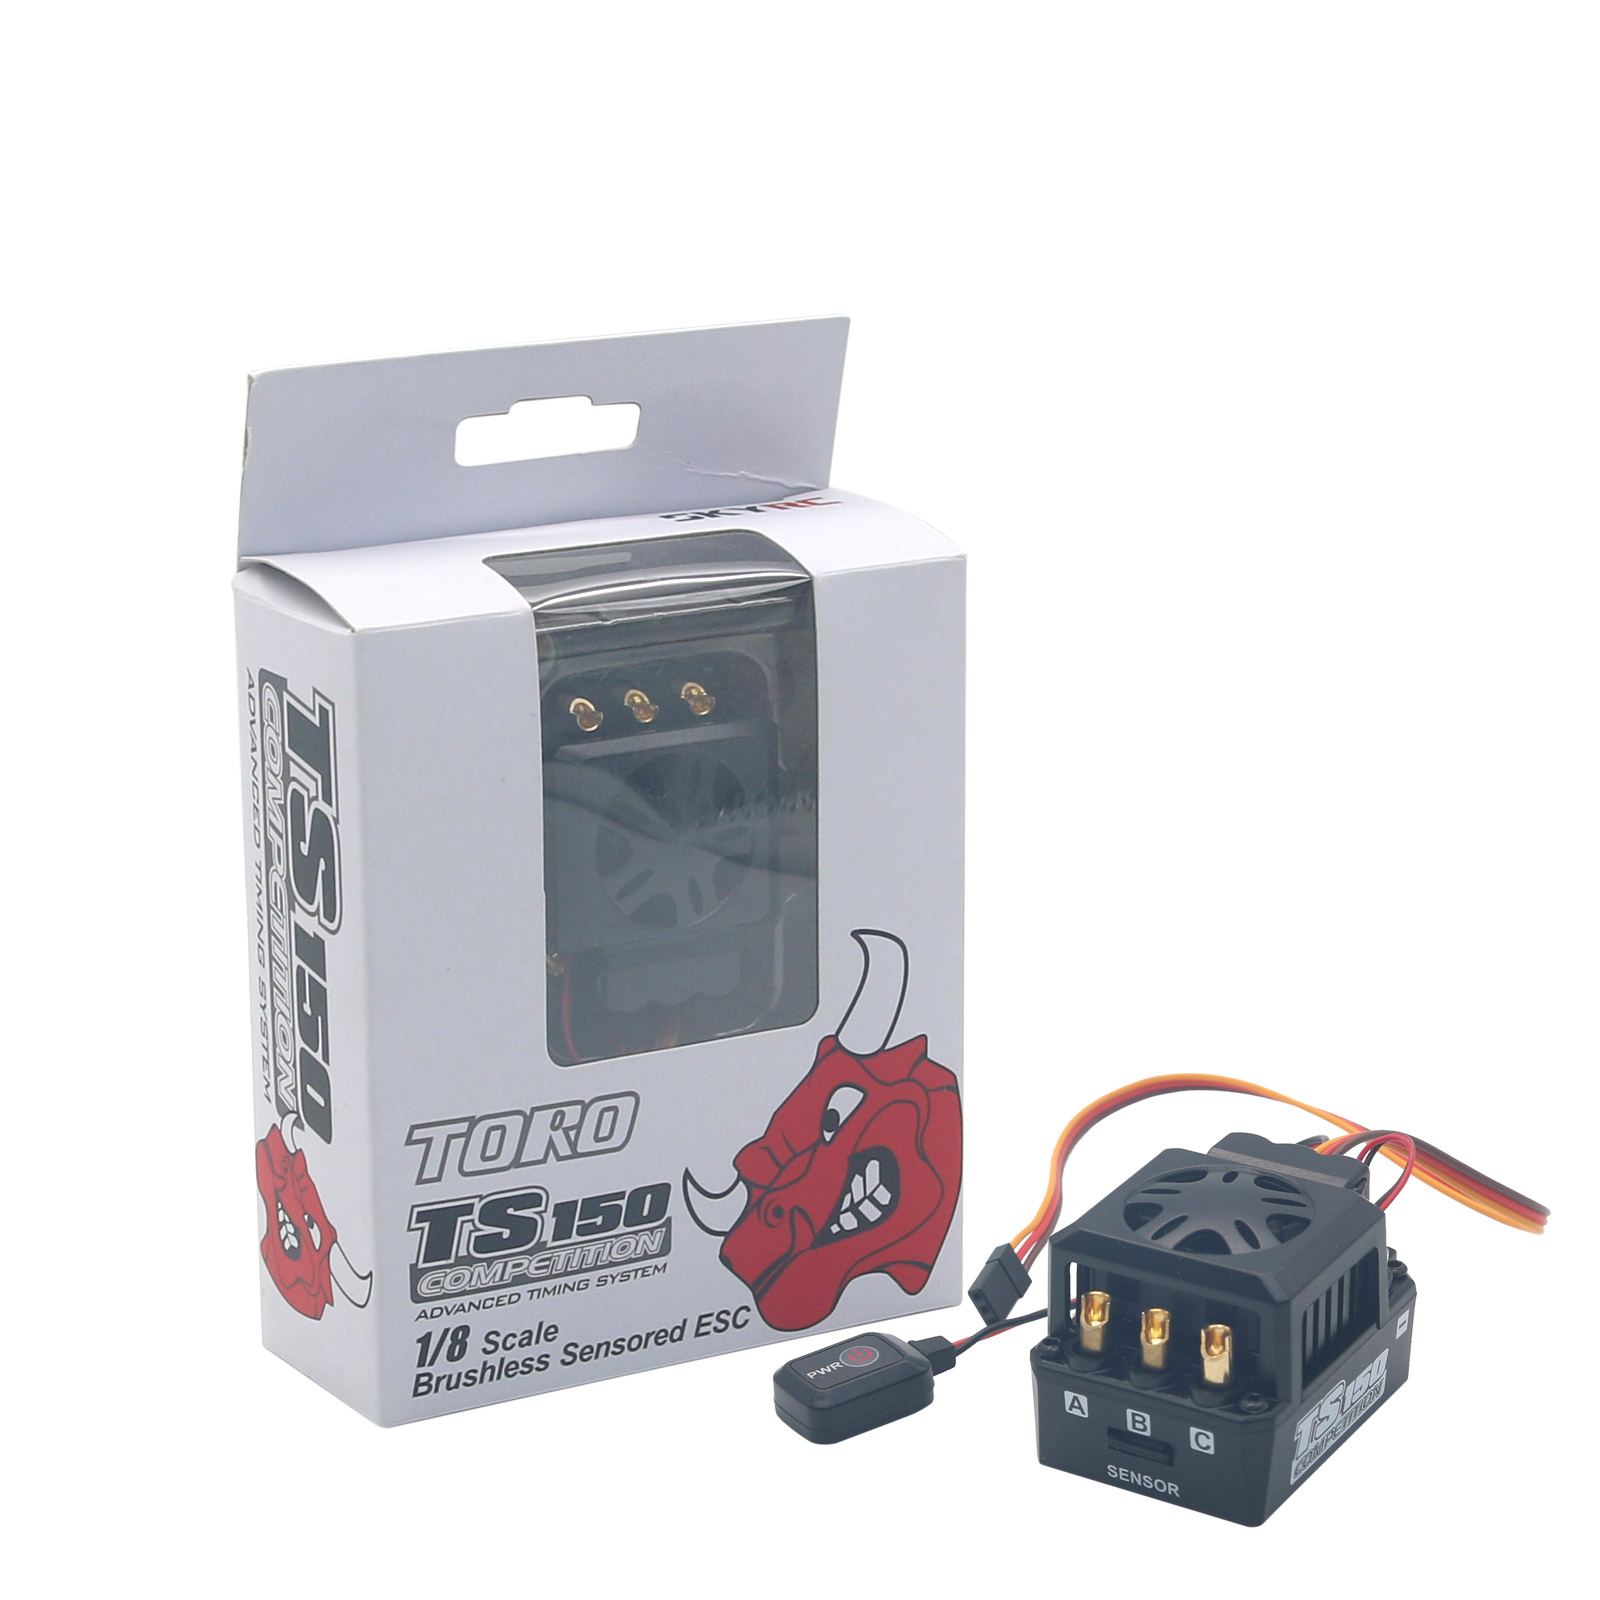 SKYRC Toro TS 150A ESC Brushless Sensored Motor ESC for 1/8  Scale RC Monster Truck Buggy Truggy original skyrc toro ts 150a brushless sensor sensorless motor esc for 1 8 rc buggy truck monster truggy free s radio control